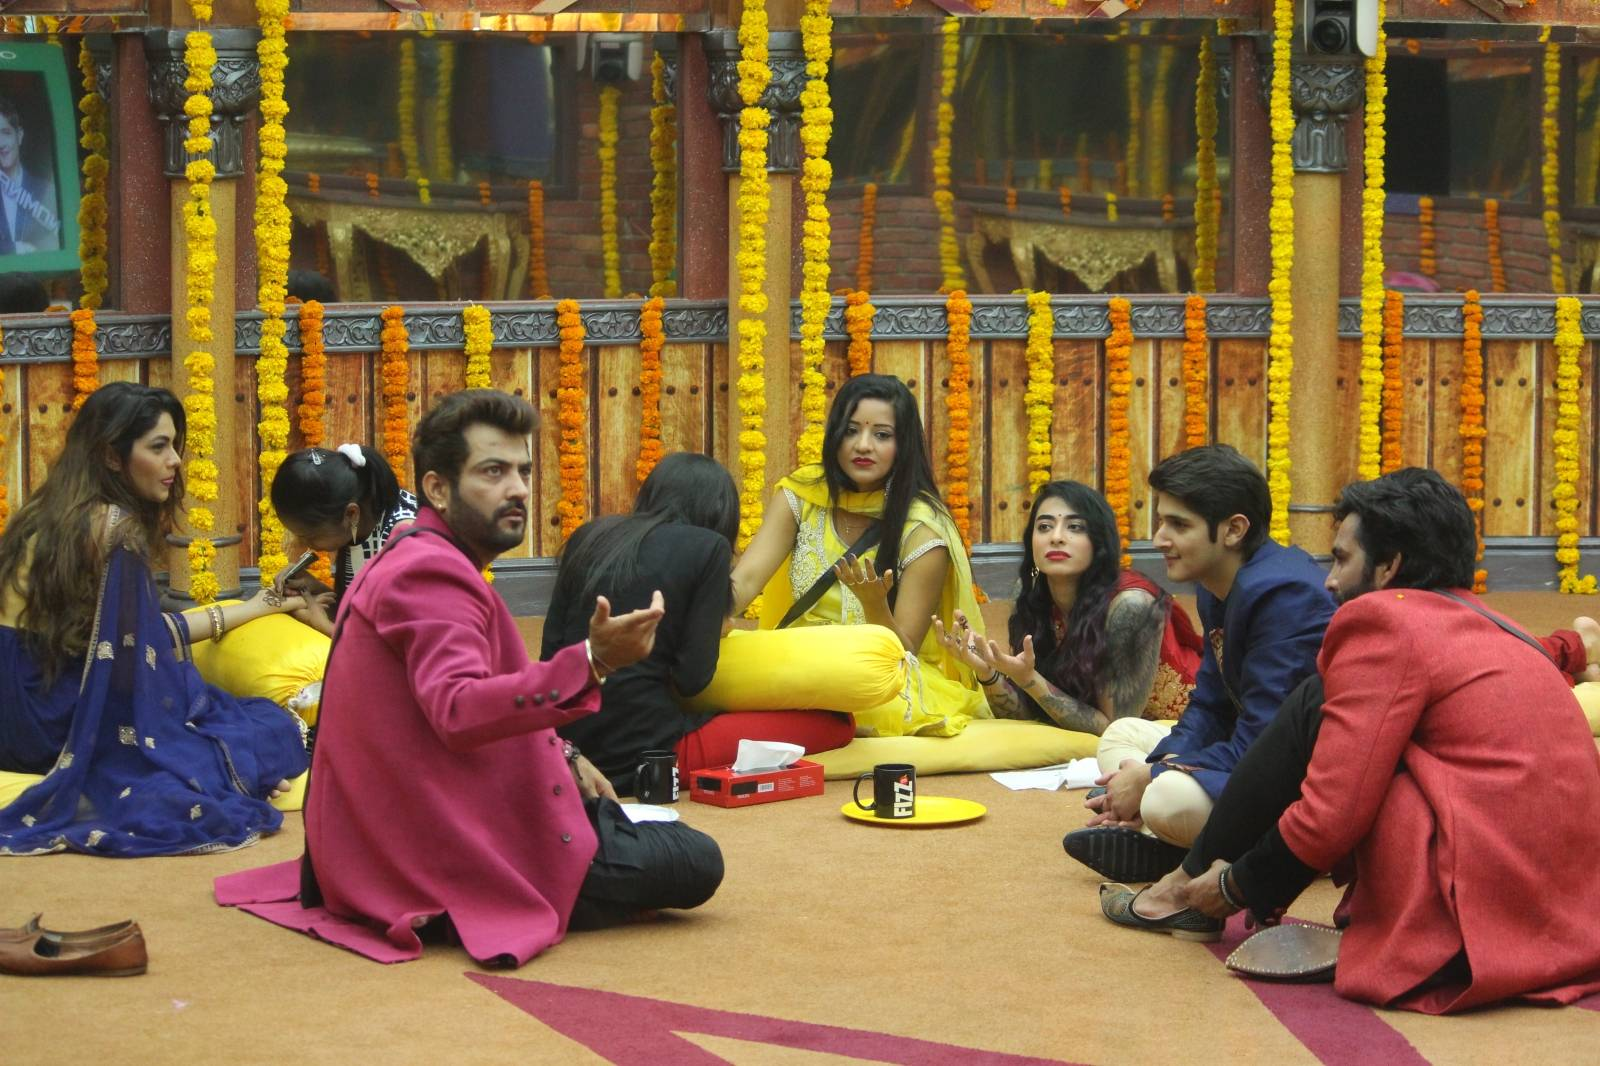 Exclusive: Monalisa weds Vikrant on Bigg Boss 10!